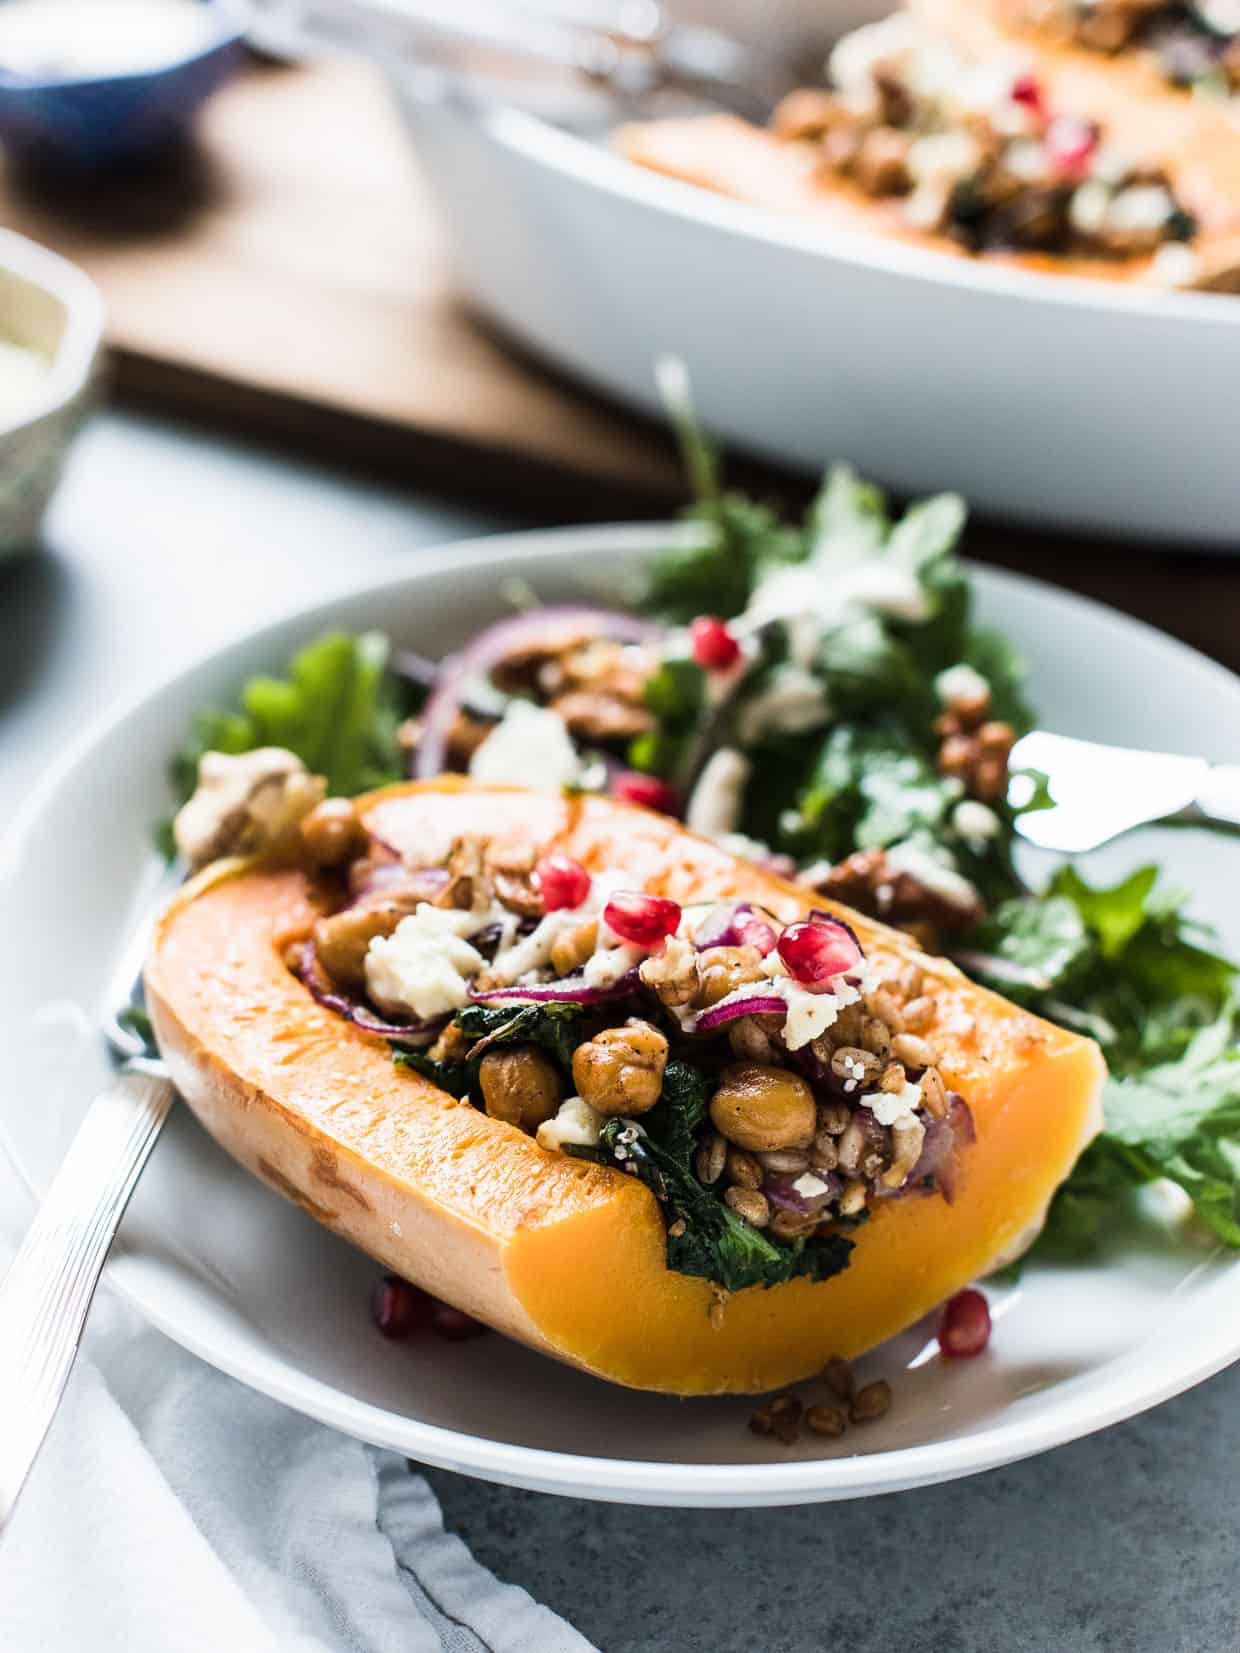 Quartered Stuffed Butternut Squash prepared with chickpeas, farro, kale, walnuts, and more.